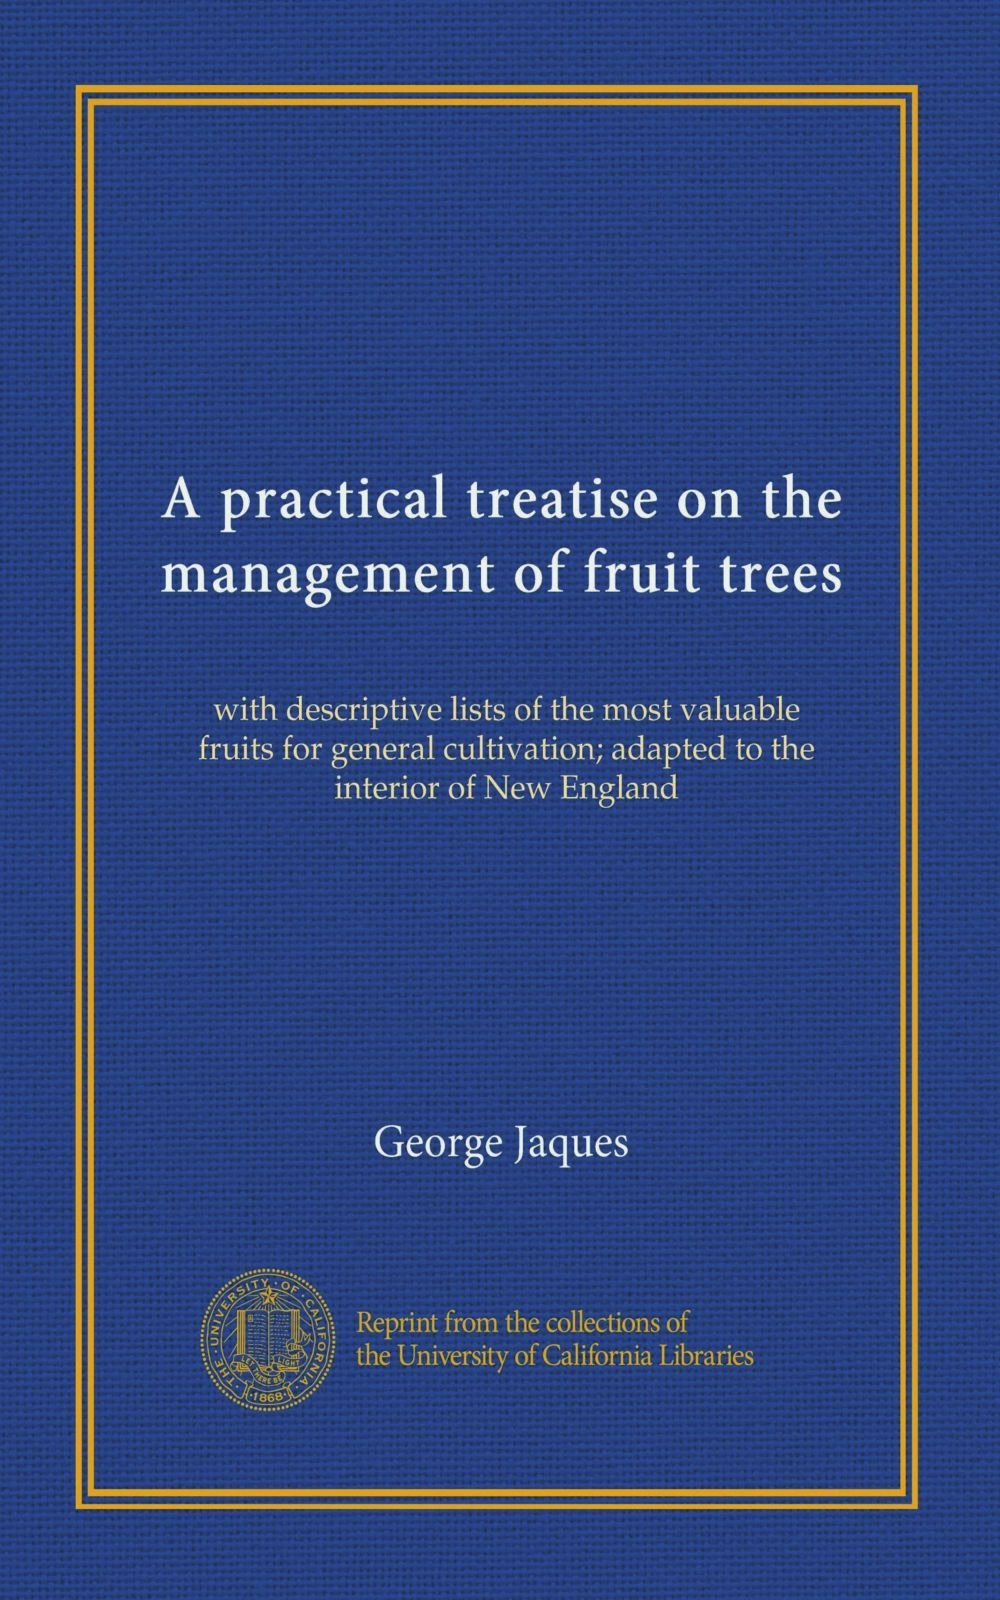 A practical treatise on the management of fruit trees: with descriptive lists of the most valuable fruits for general cultivation; adapted to the interior of New England